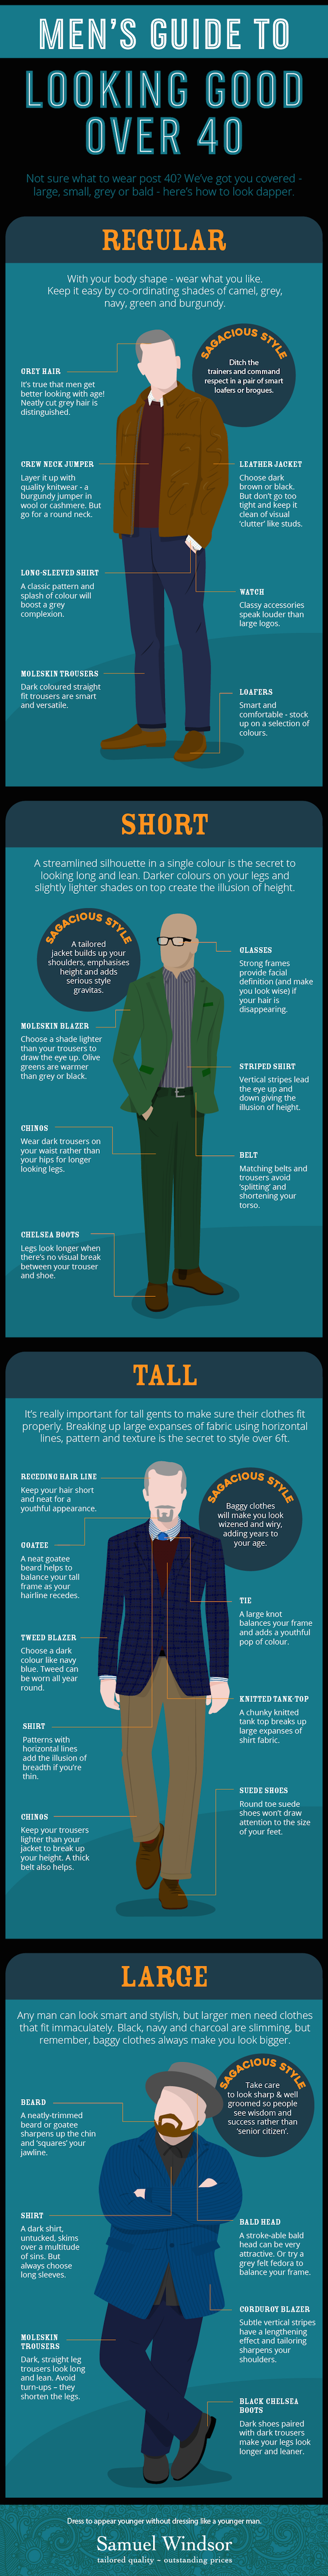 Mature Wine is the Best: The 40+ Men's Style Guide - Infographic